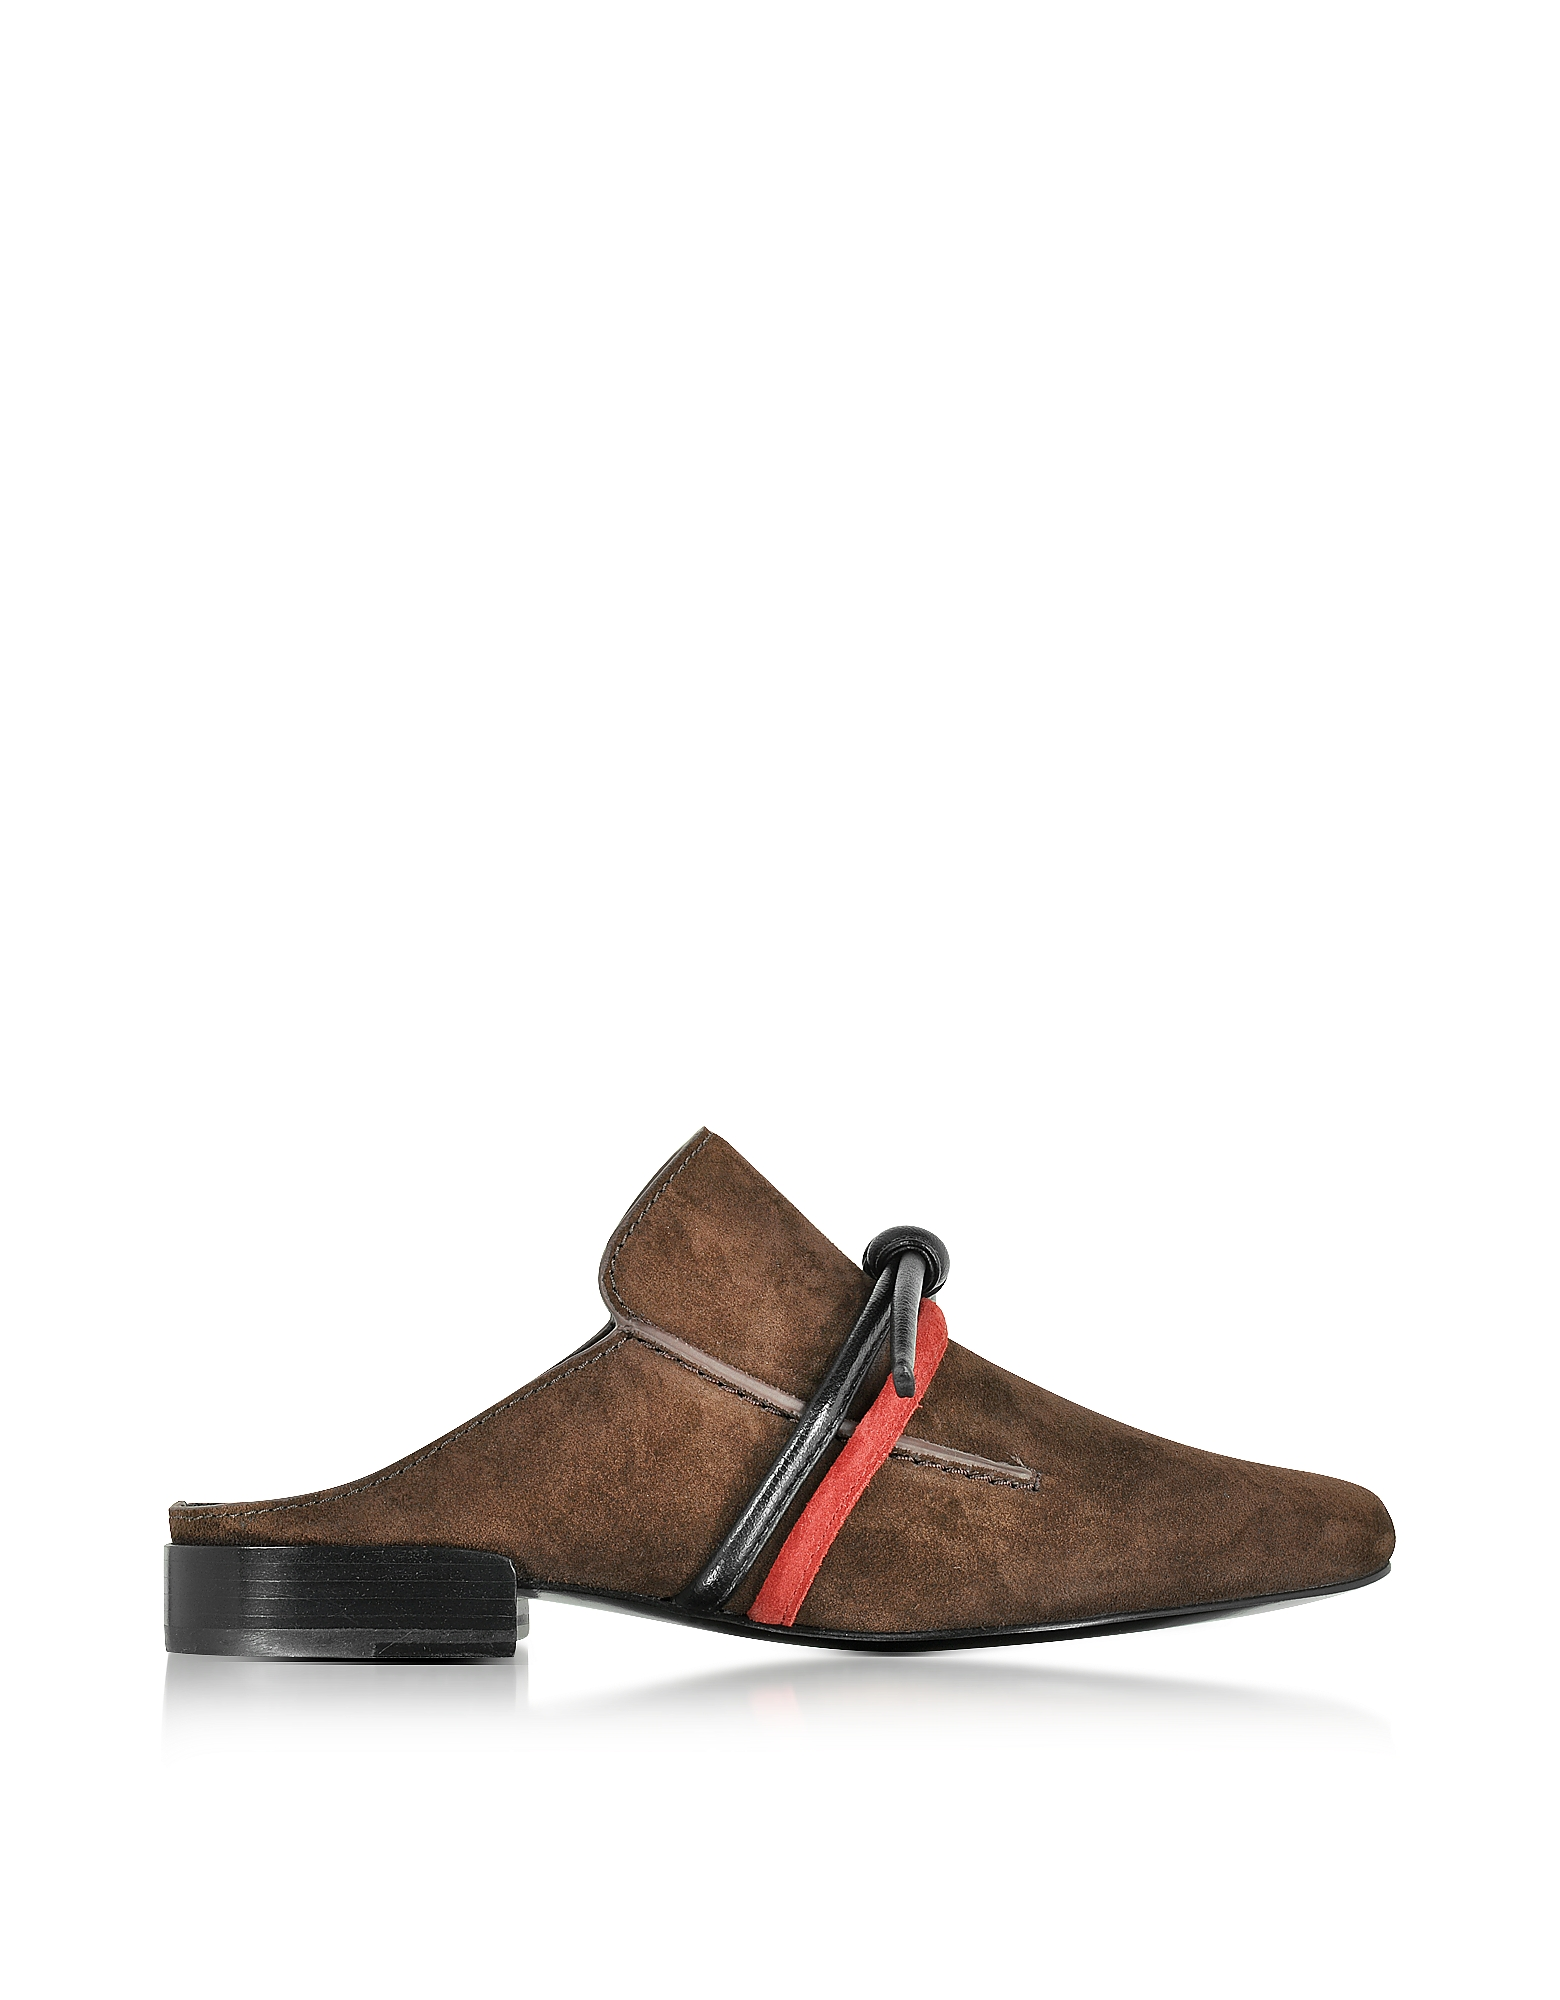 3.1 Phillip Lim Shoes, Louie Espresso Suede Mule